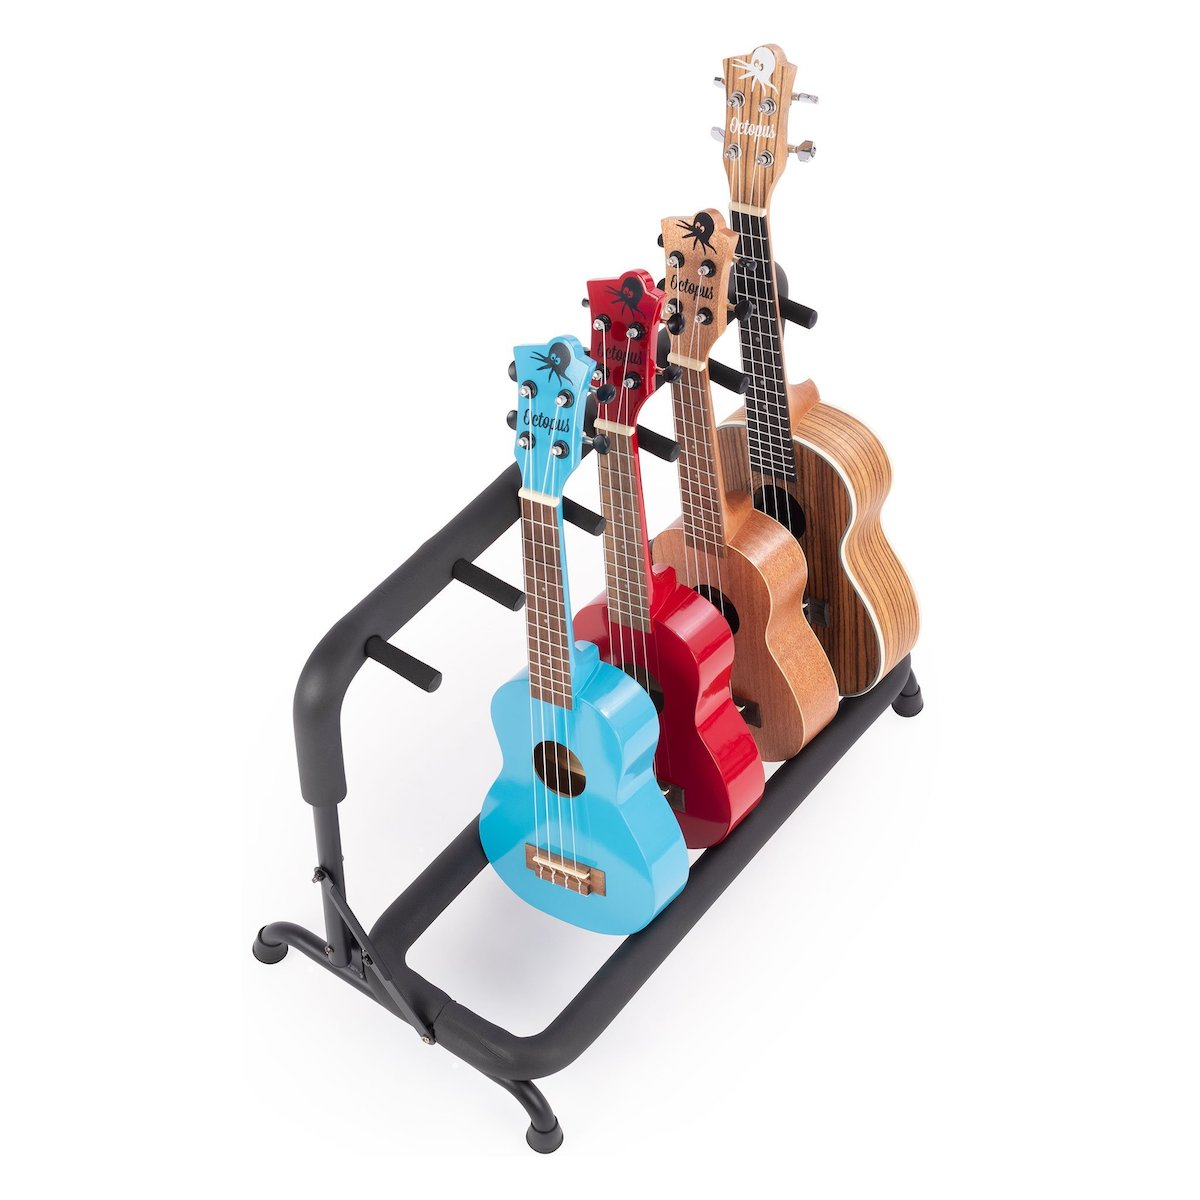 Octopus Universal Stand for Multiple Ukuleles